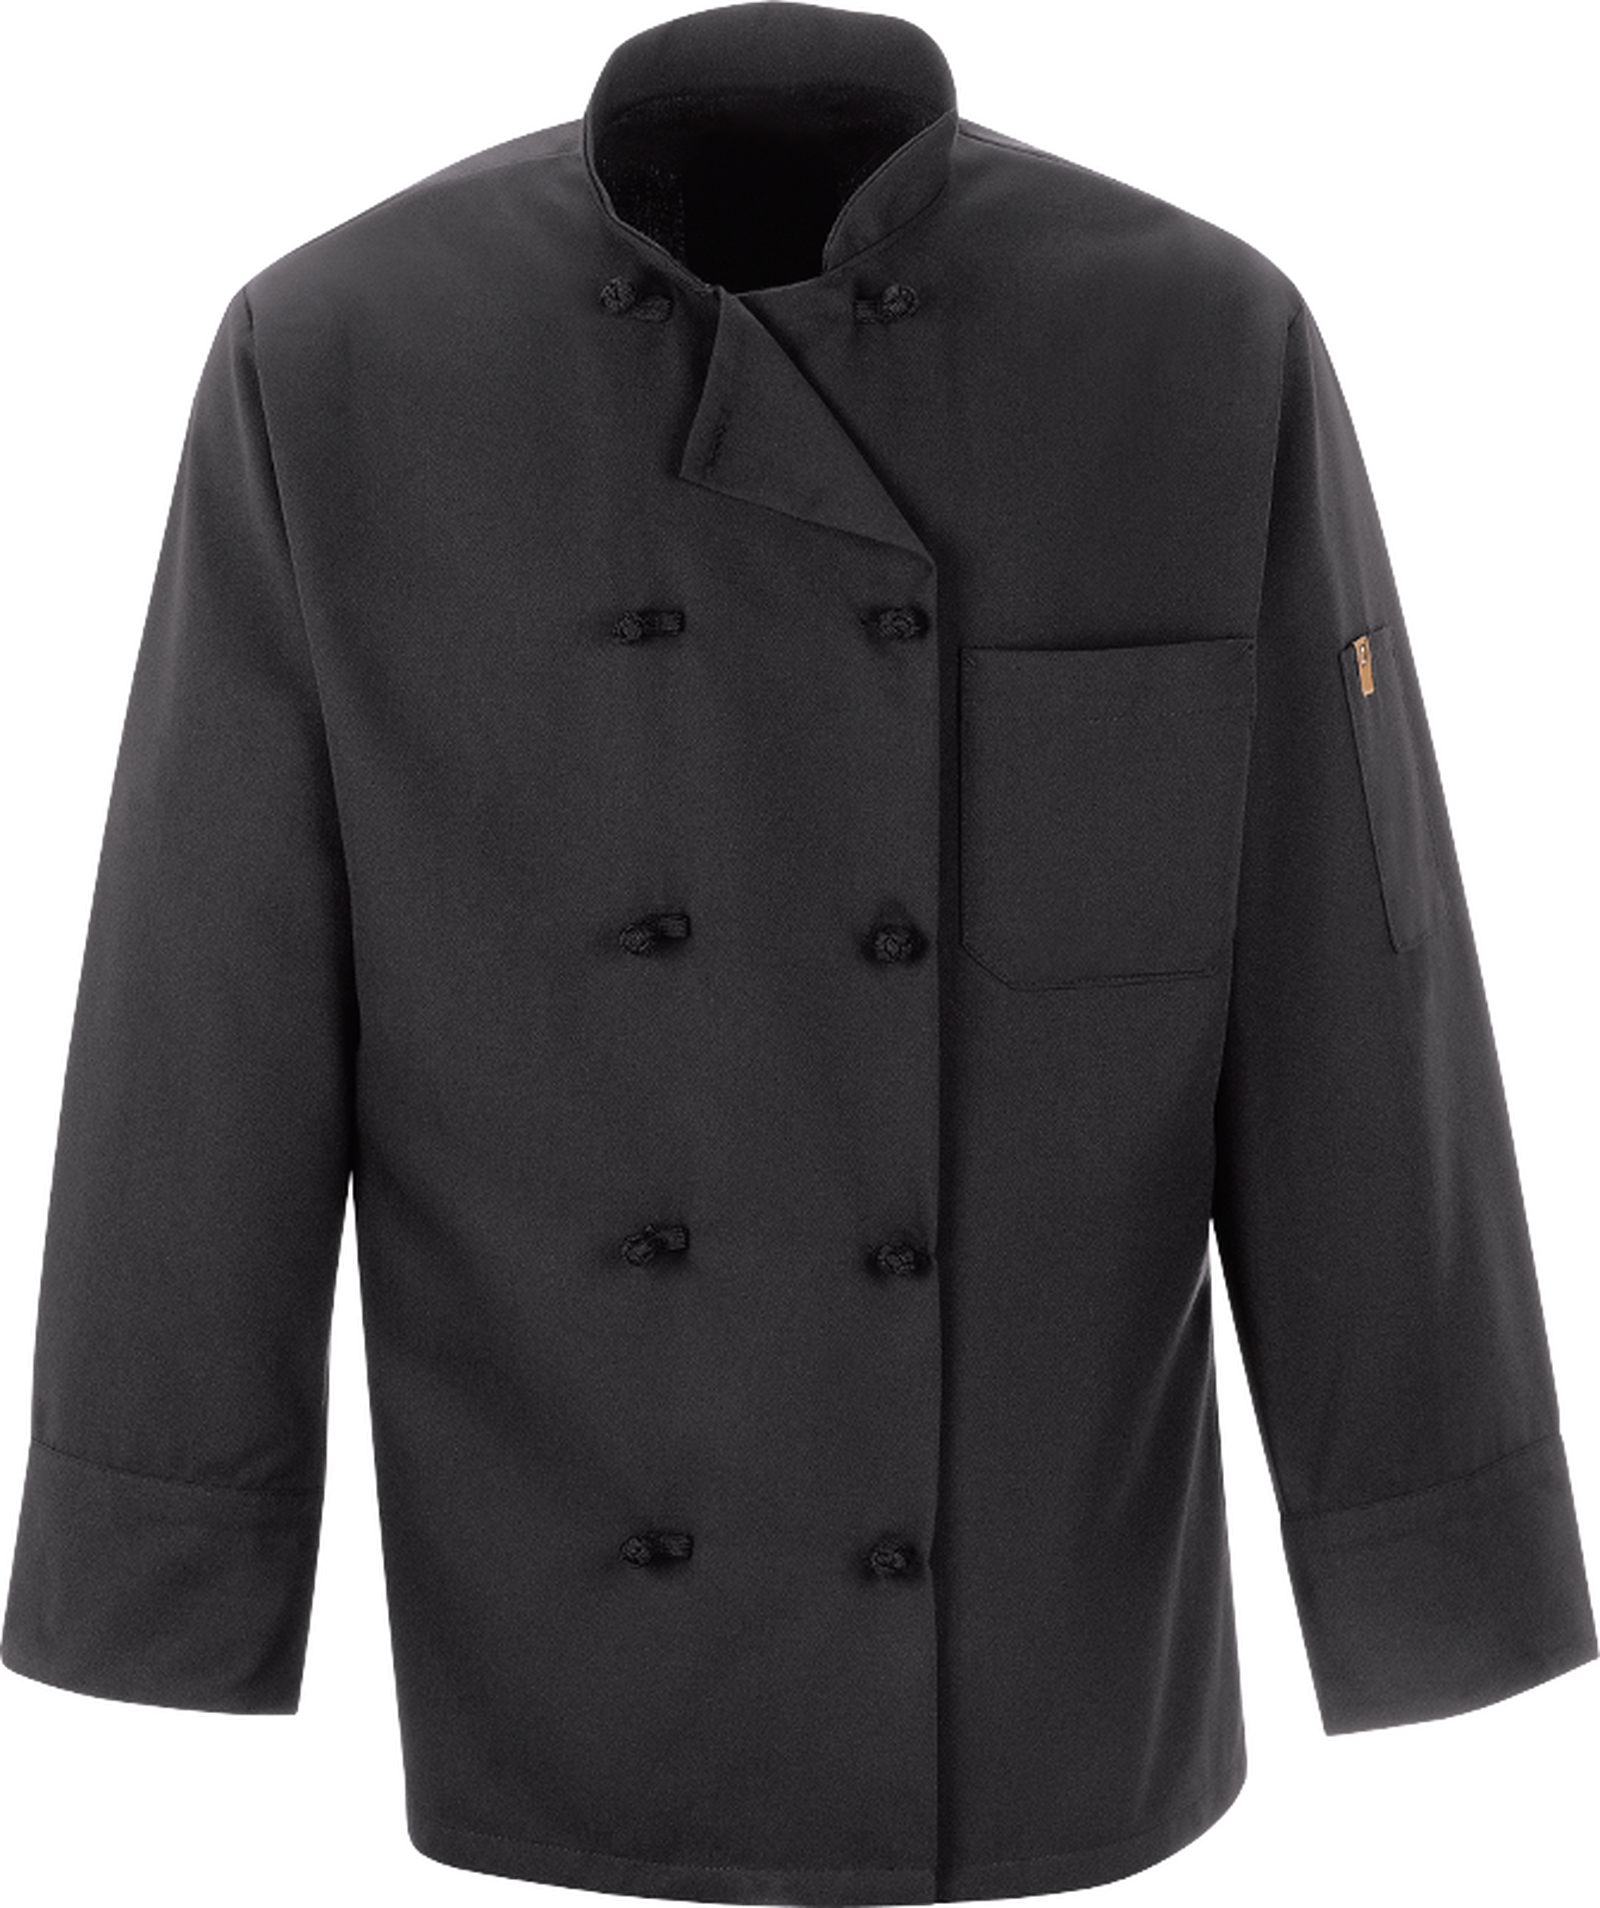 Chef Designs Black Chef Coat 10 Knot Buttons